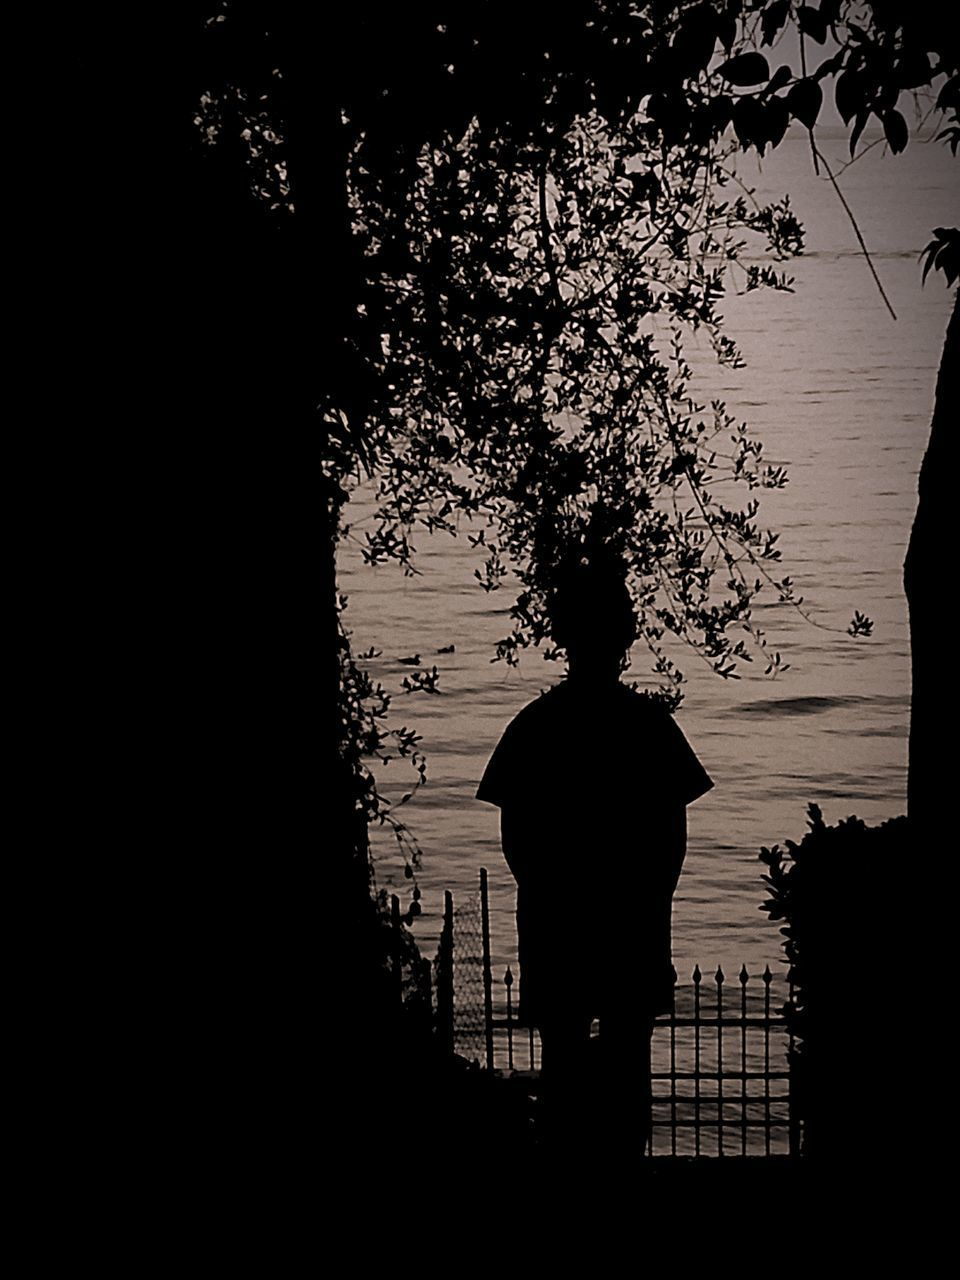 silhouette, sunset, tree, water, sky, tranquility, branch, nature, dusk, tranquil scene, scenics, beauty in nature, outline, reflection, growth, tree trunk, lake, outdoors, built structure, no people